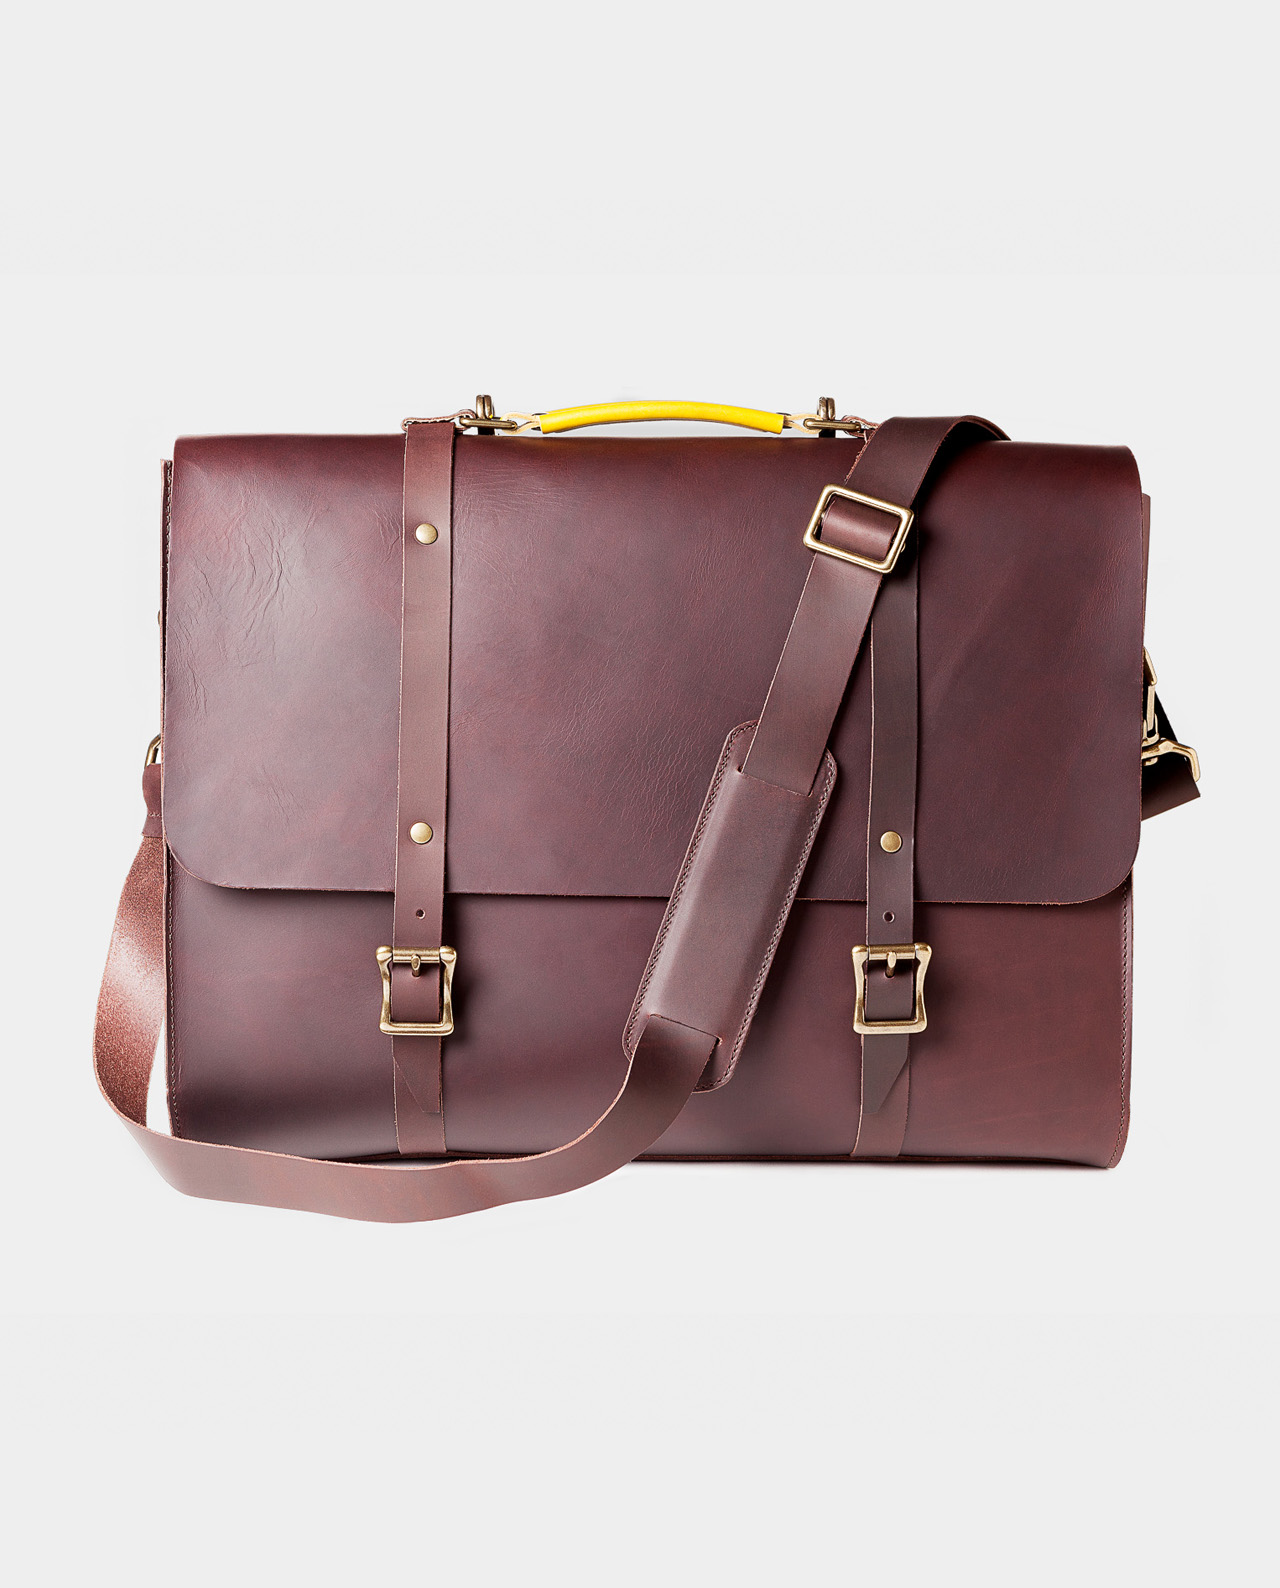 Functional and durable 3-in-1 leather briefcase handcrafted by artisans in Spain.